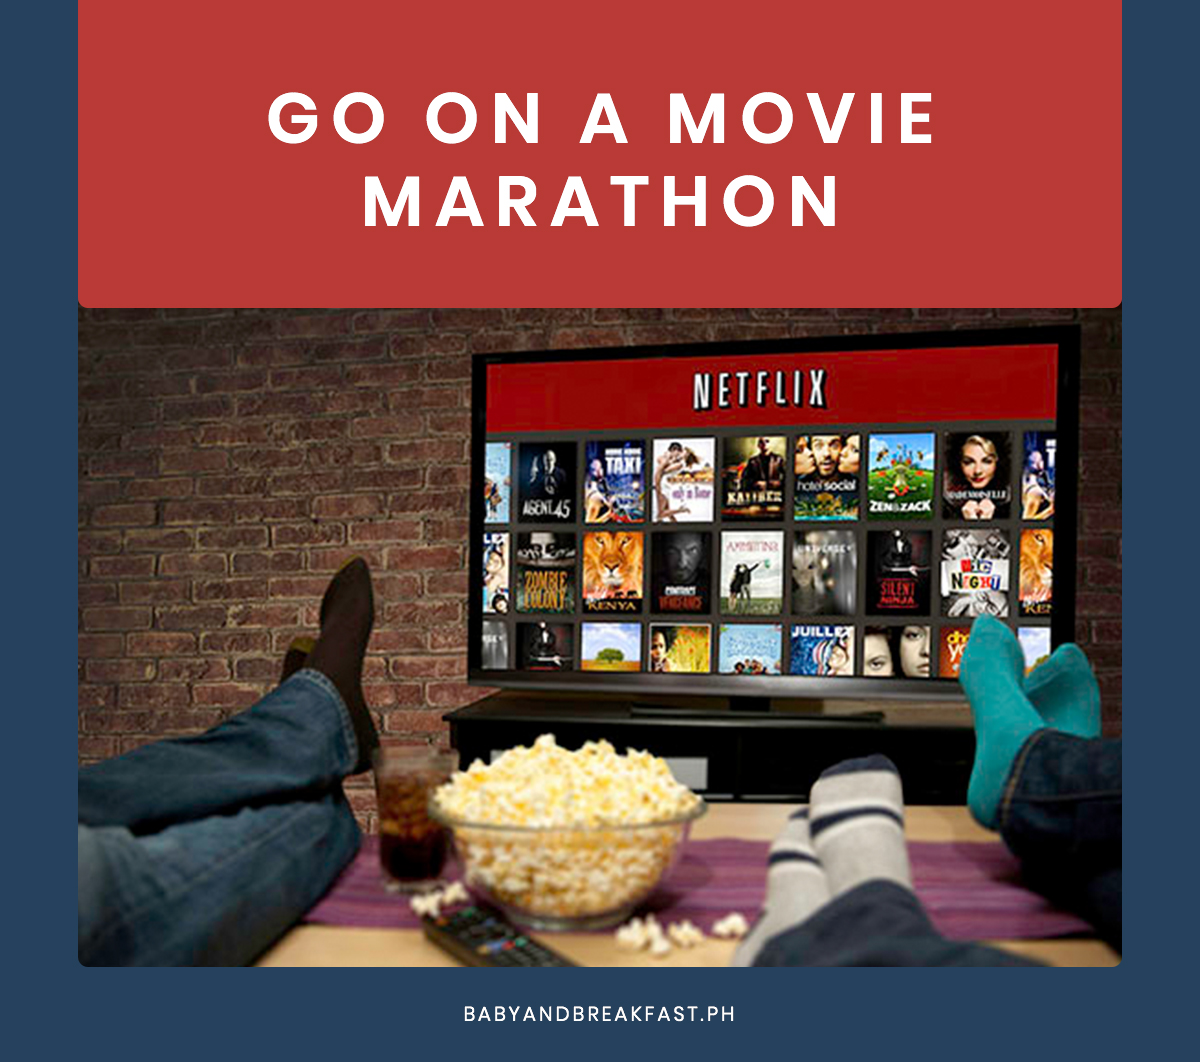 Go on a movie marathon